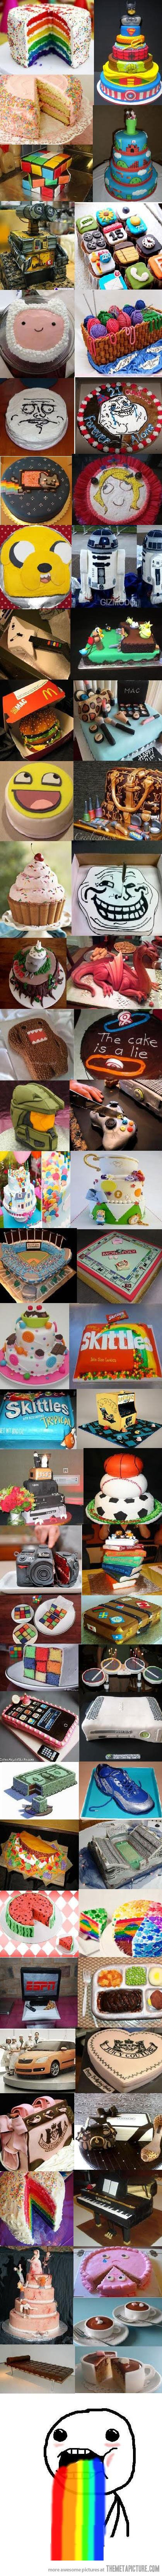 Cakes cakes & more cakes